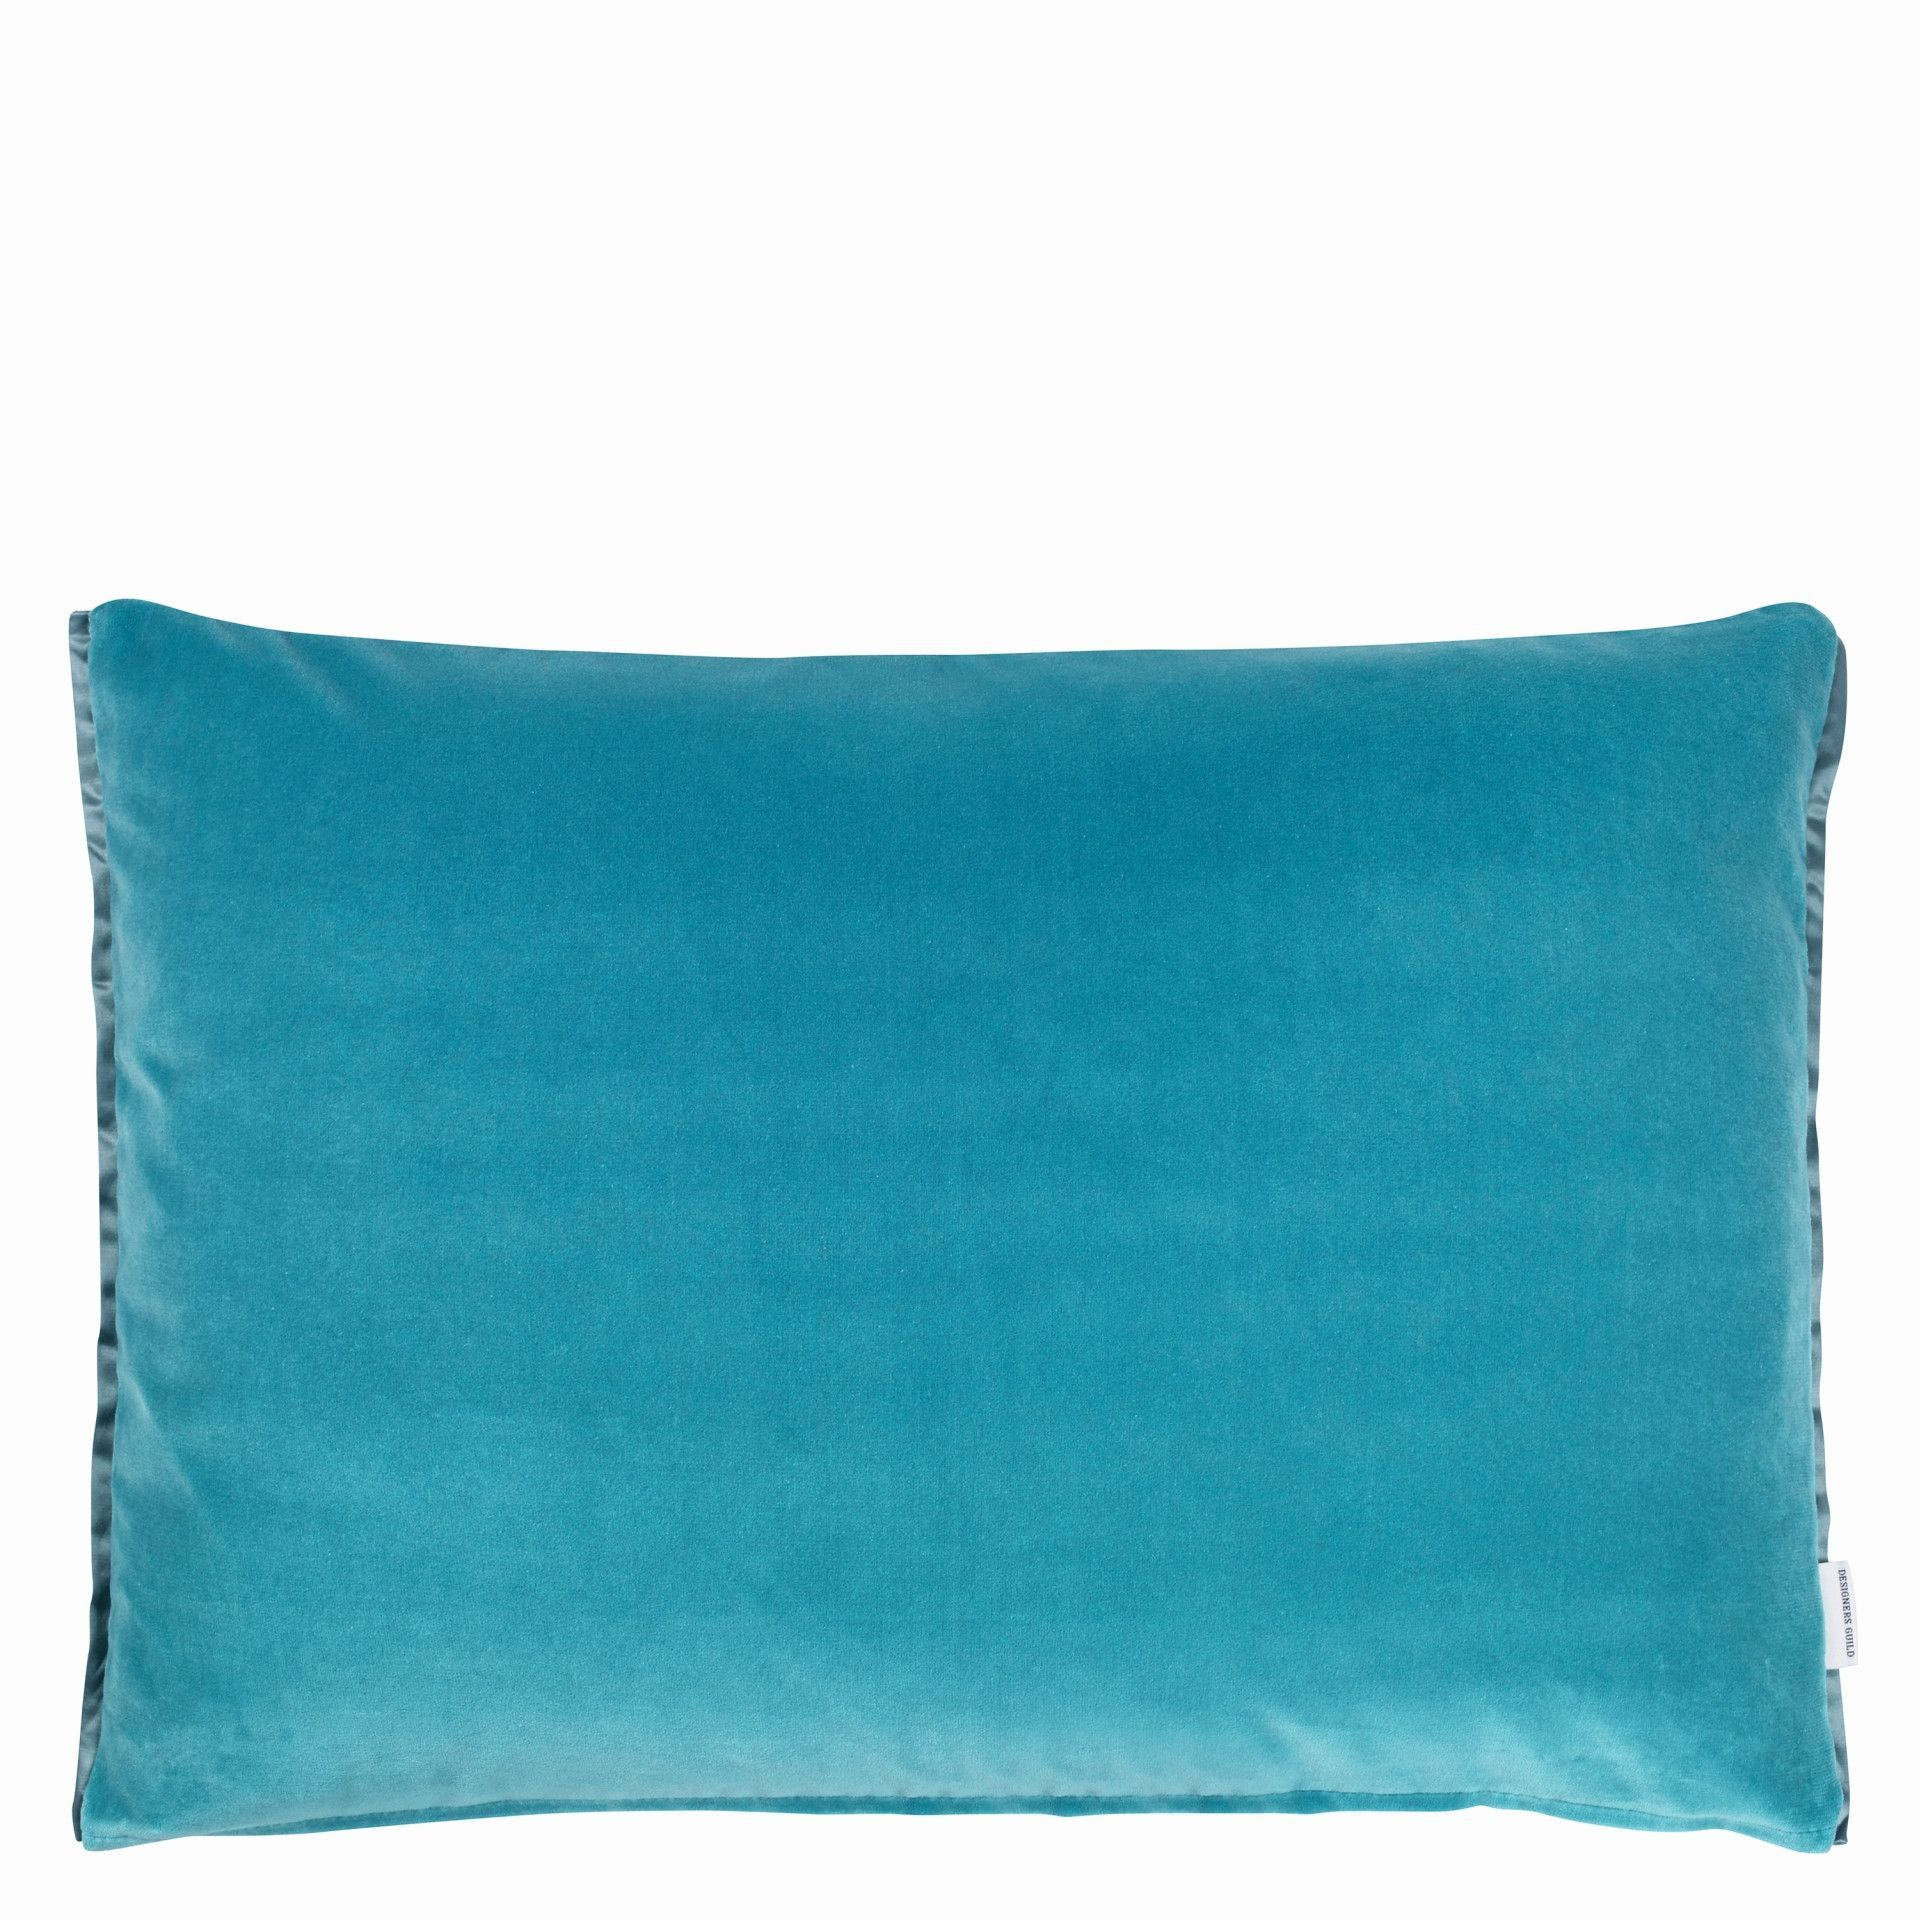 Cassia throw pillow in kingfisher design by designers guild